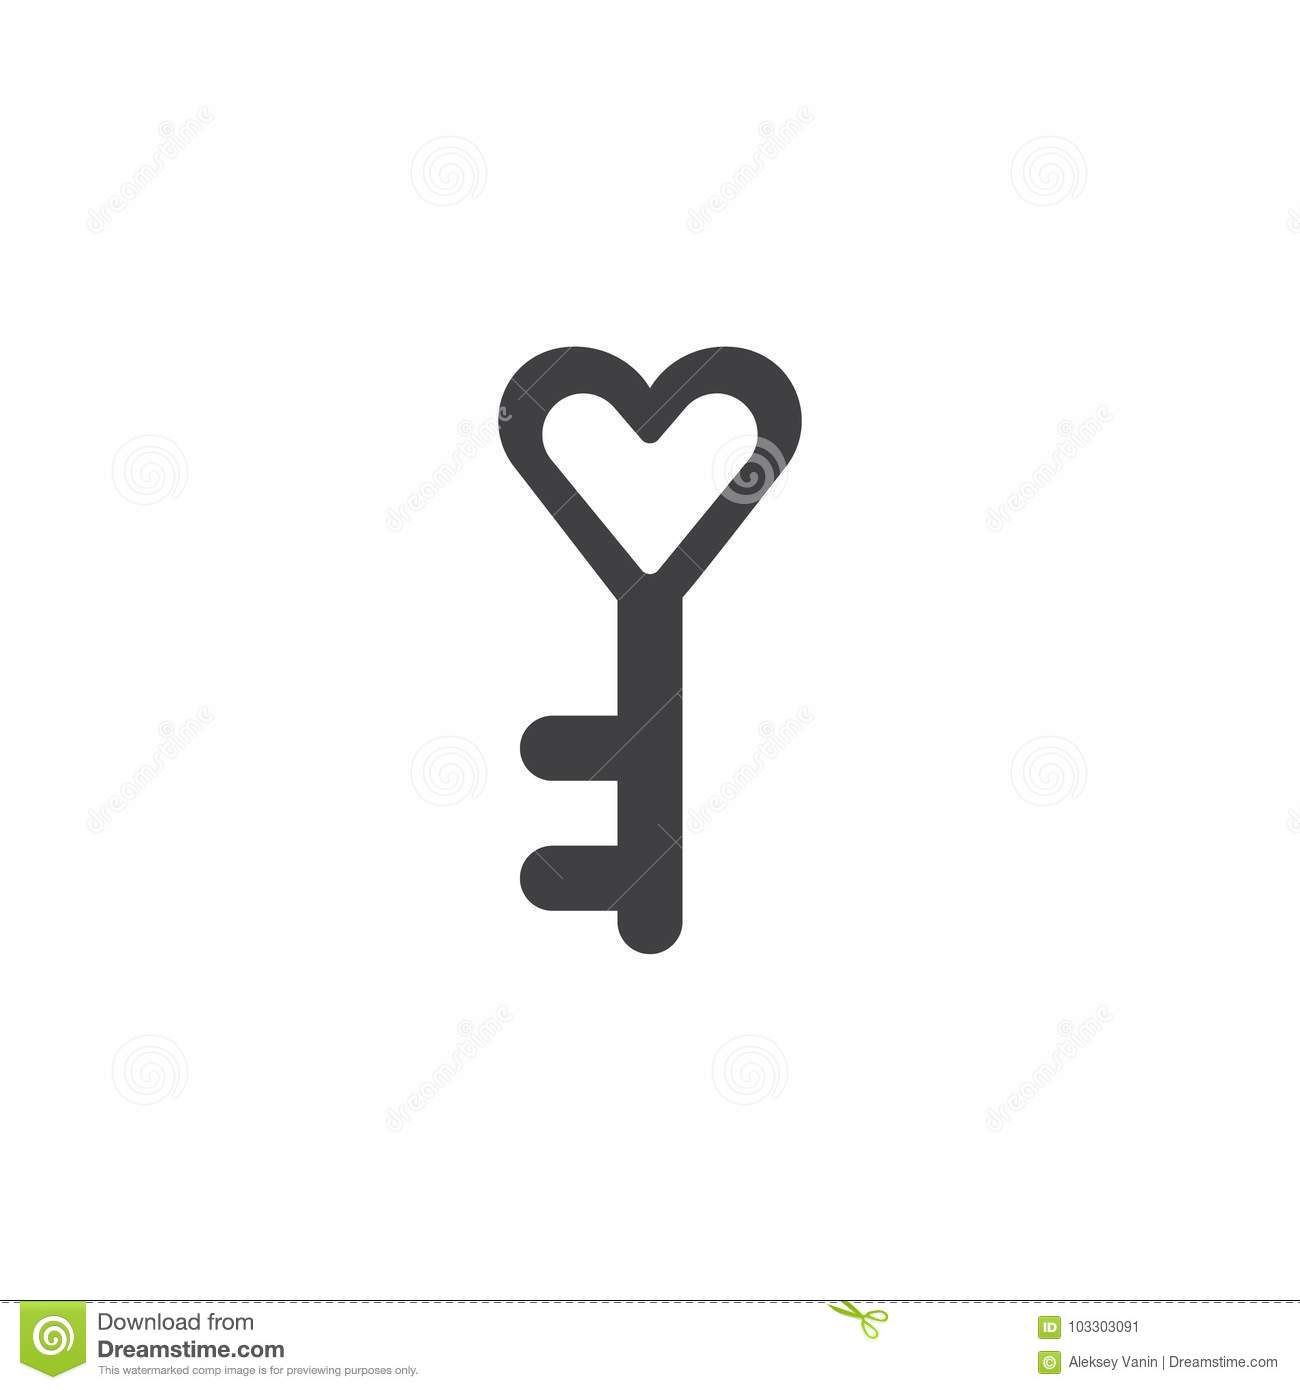 Heart Key Icon Vector Stock Vector Illustration Of Celebration